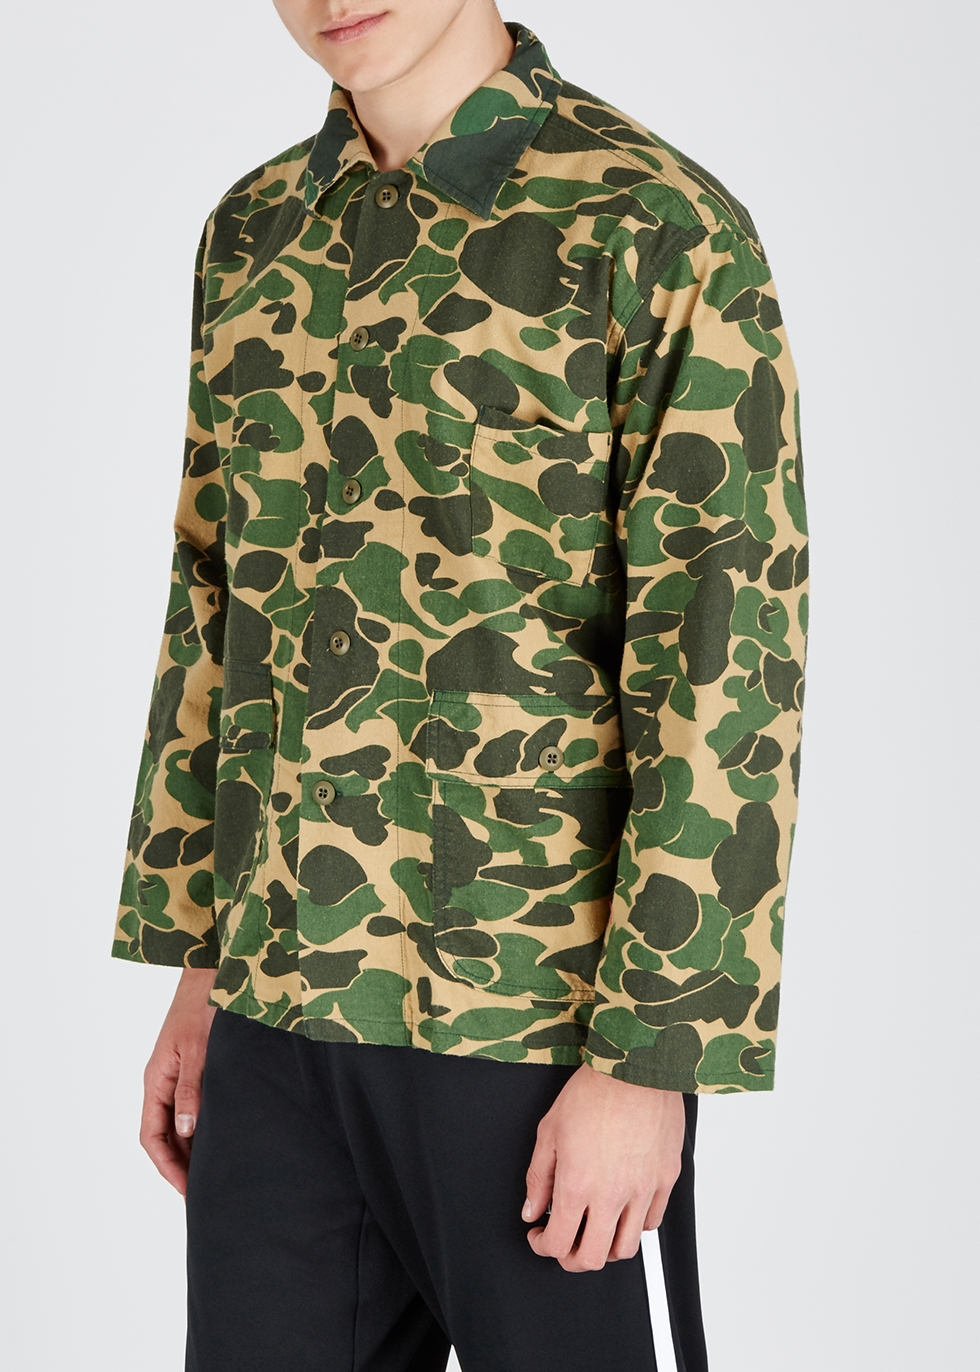 Hunting camouflage-print cotton shirt - South2 West8